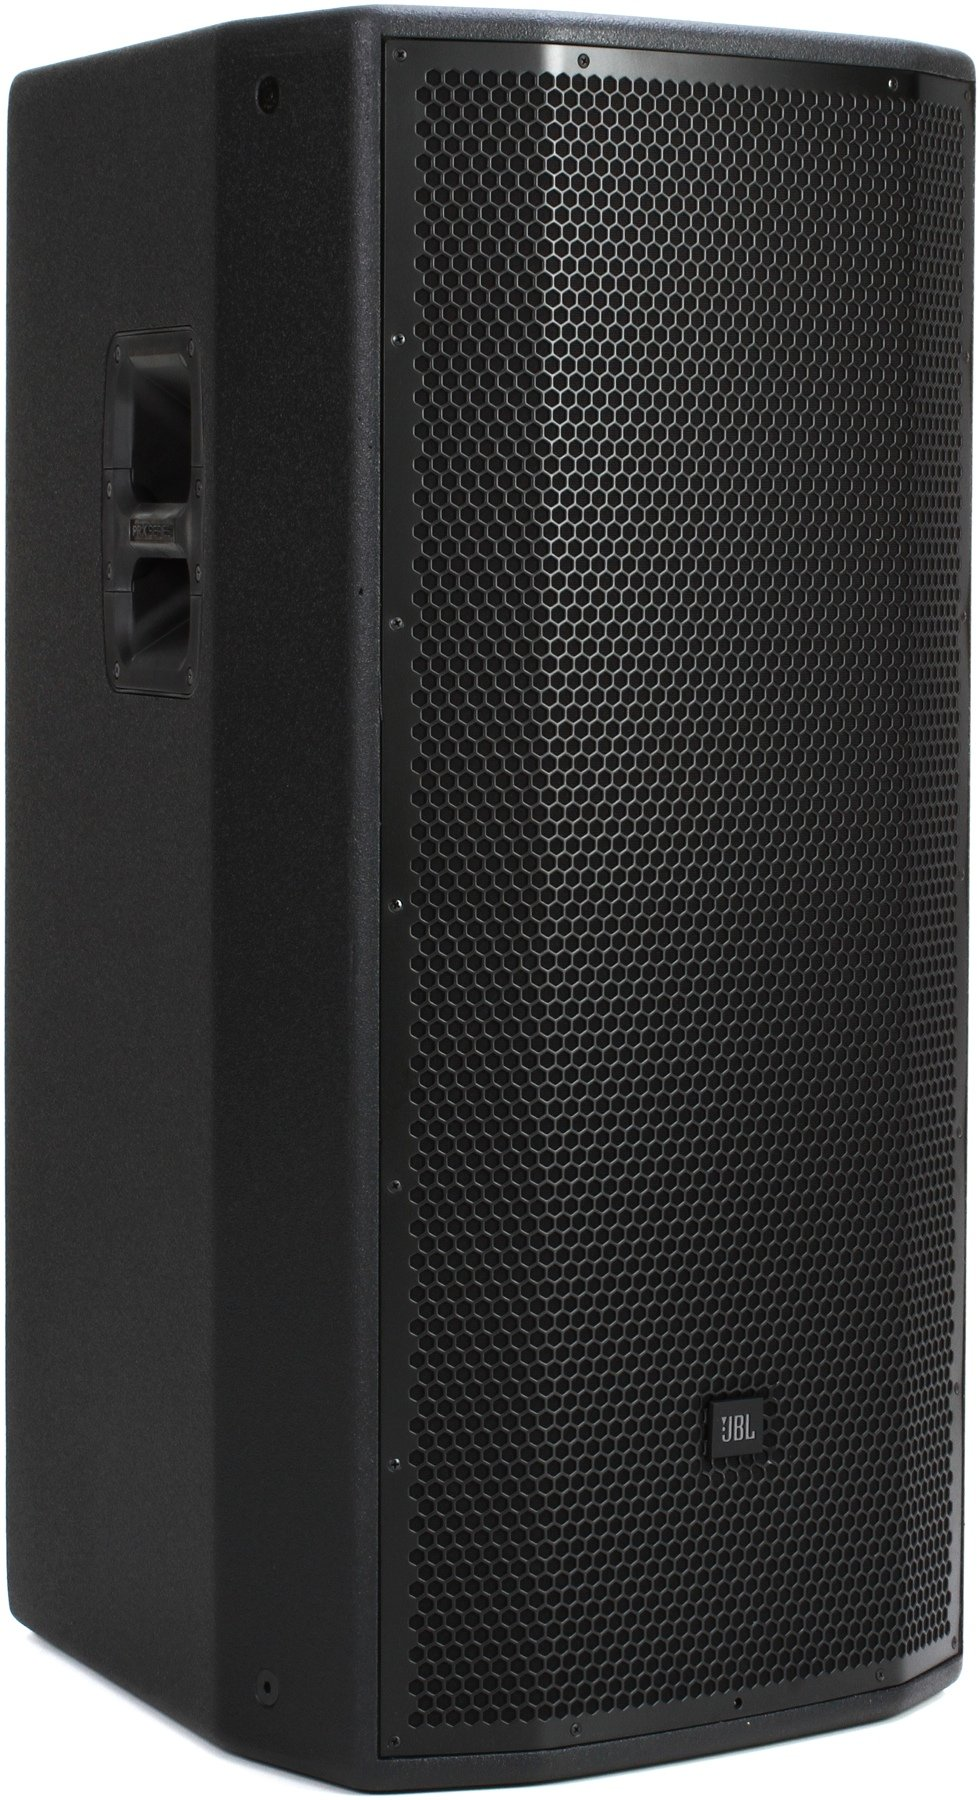 Jbl Prx818xlfw 1500w 18 Powered Subwoofer Sweetwater Way Speaker Crossover Work Also Speakers 3 Diagrams Prx835w 15